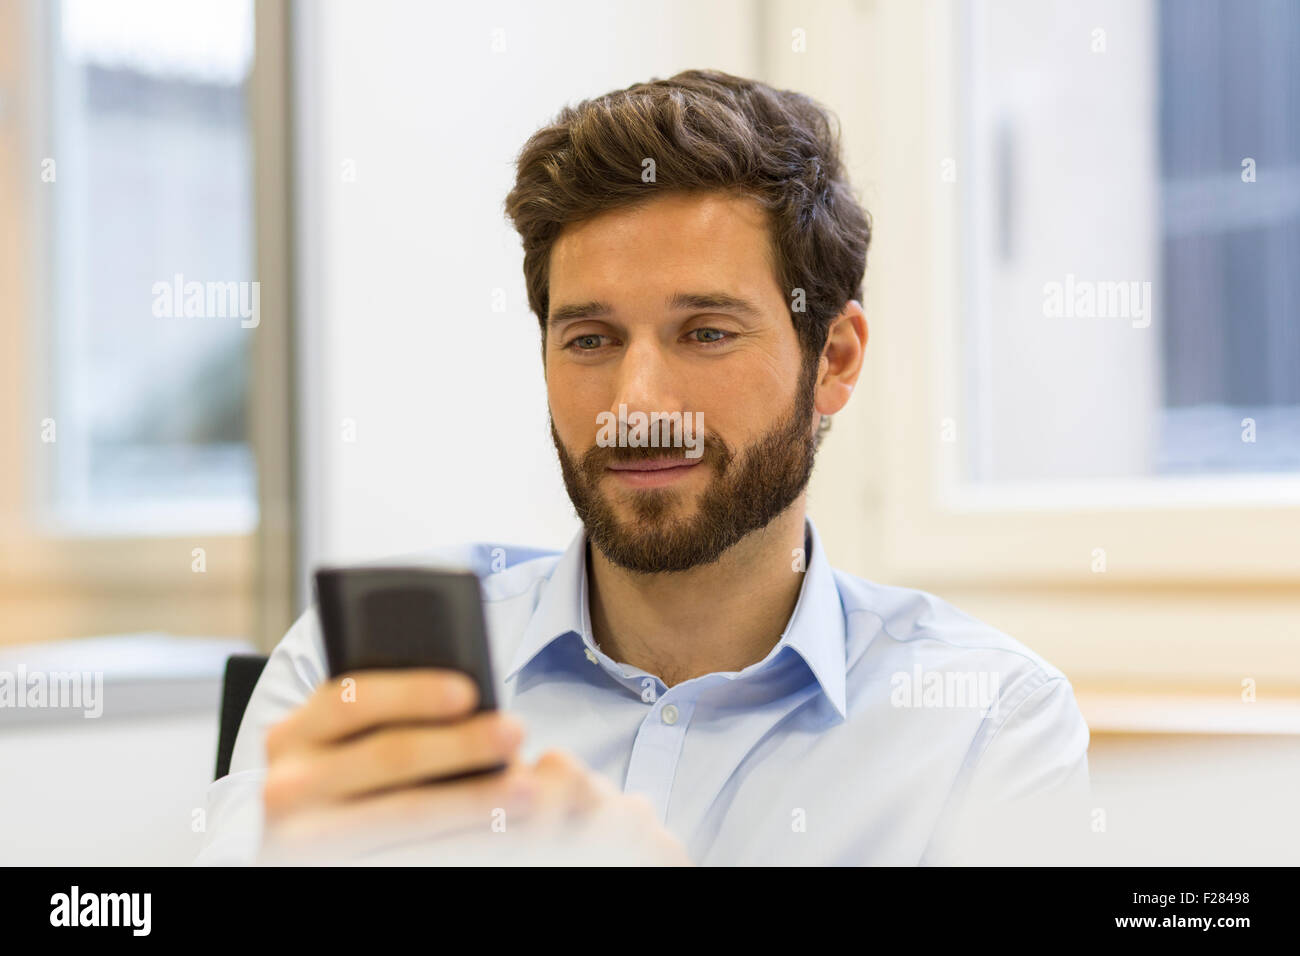 Cheerful bearded man using his smartphone in modern office - Stock Image